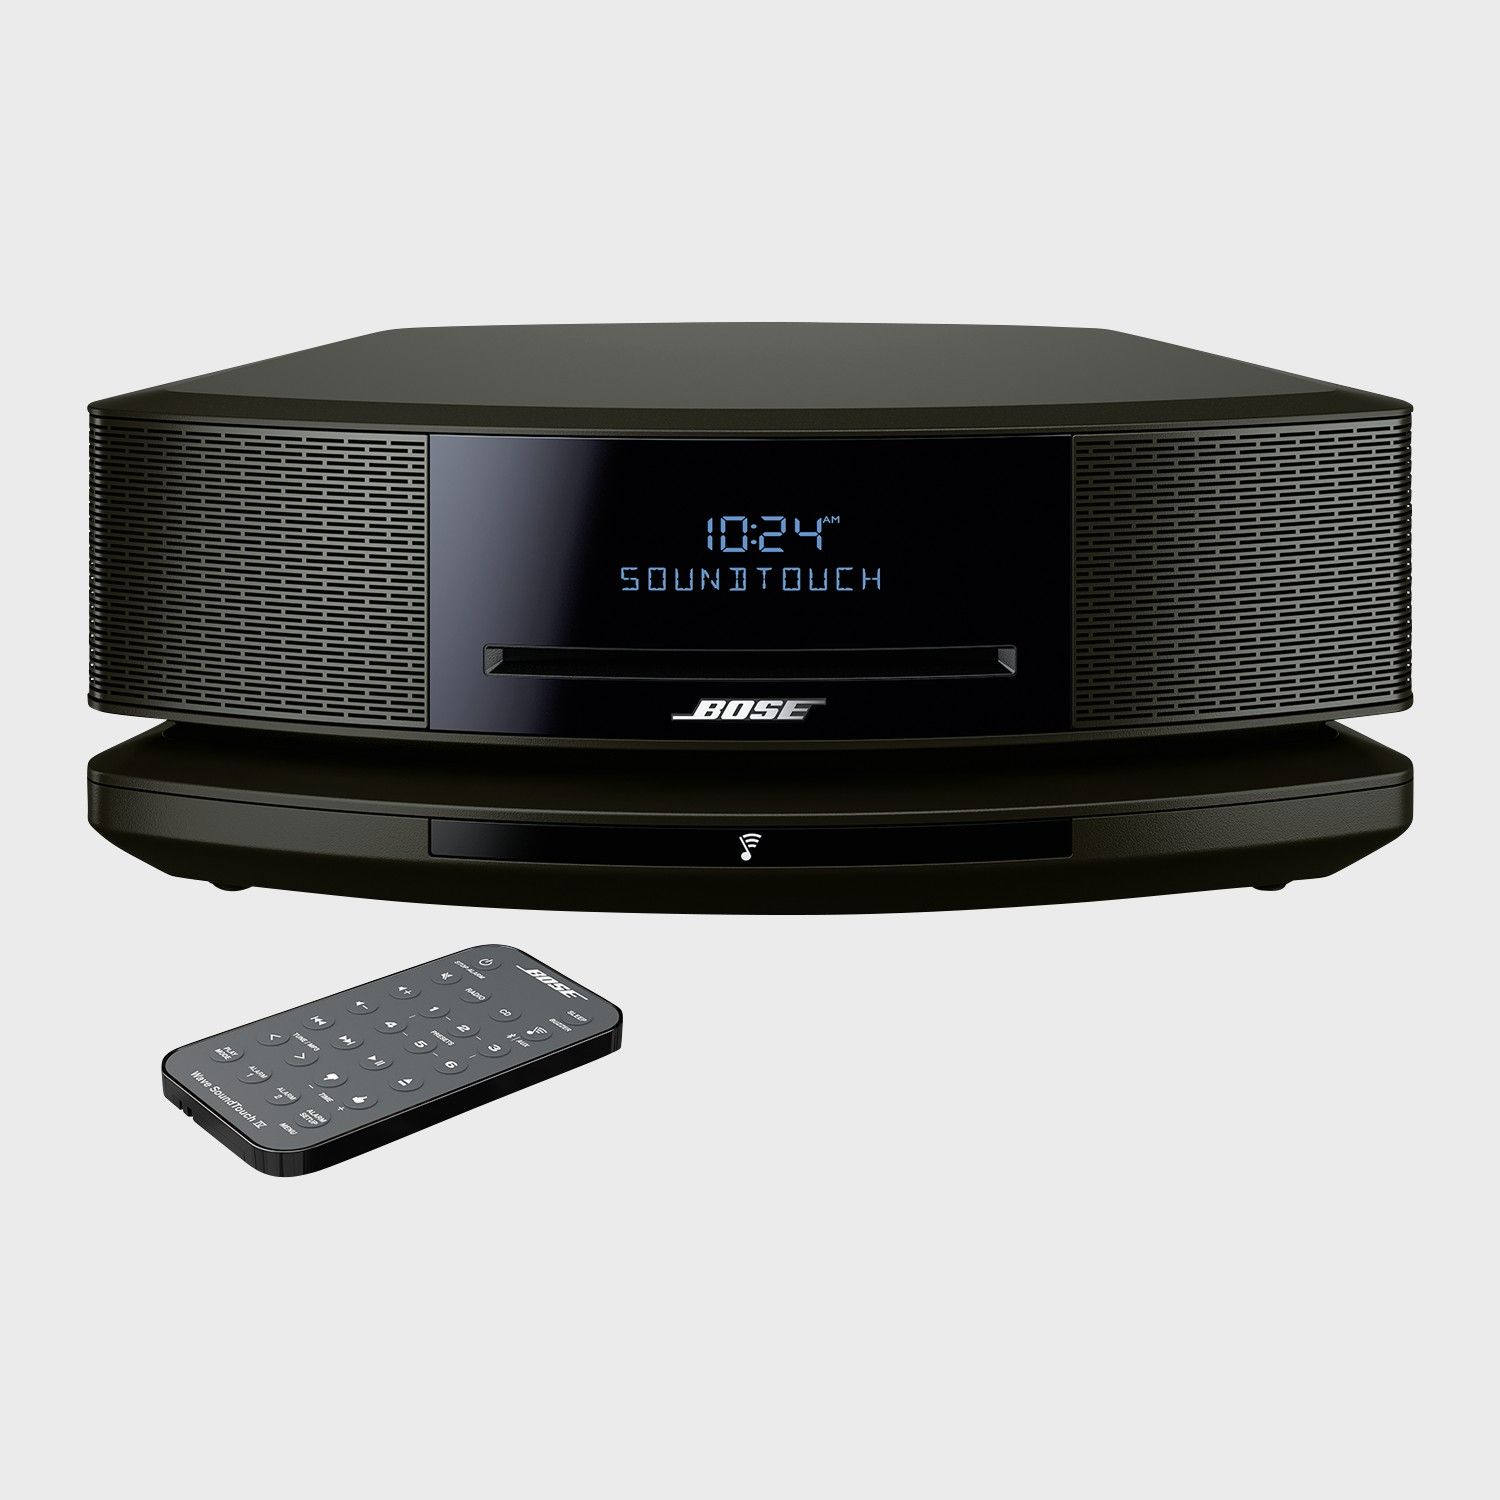 Bose Wave music system III: How it works | GADGETS | Pinterest